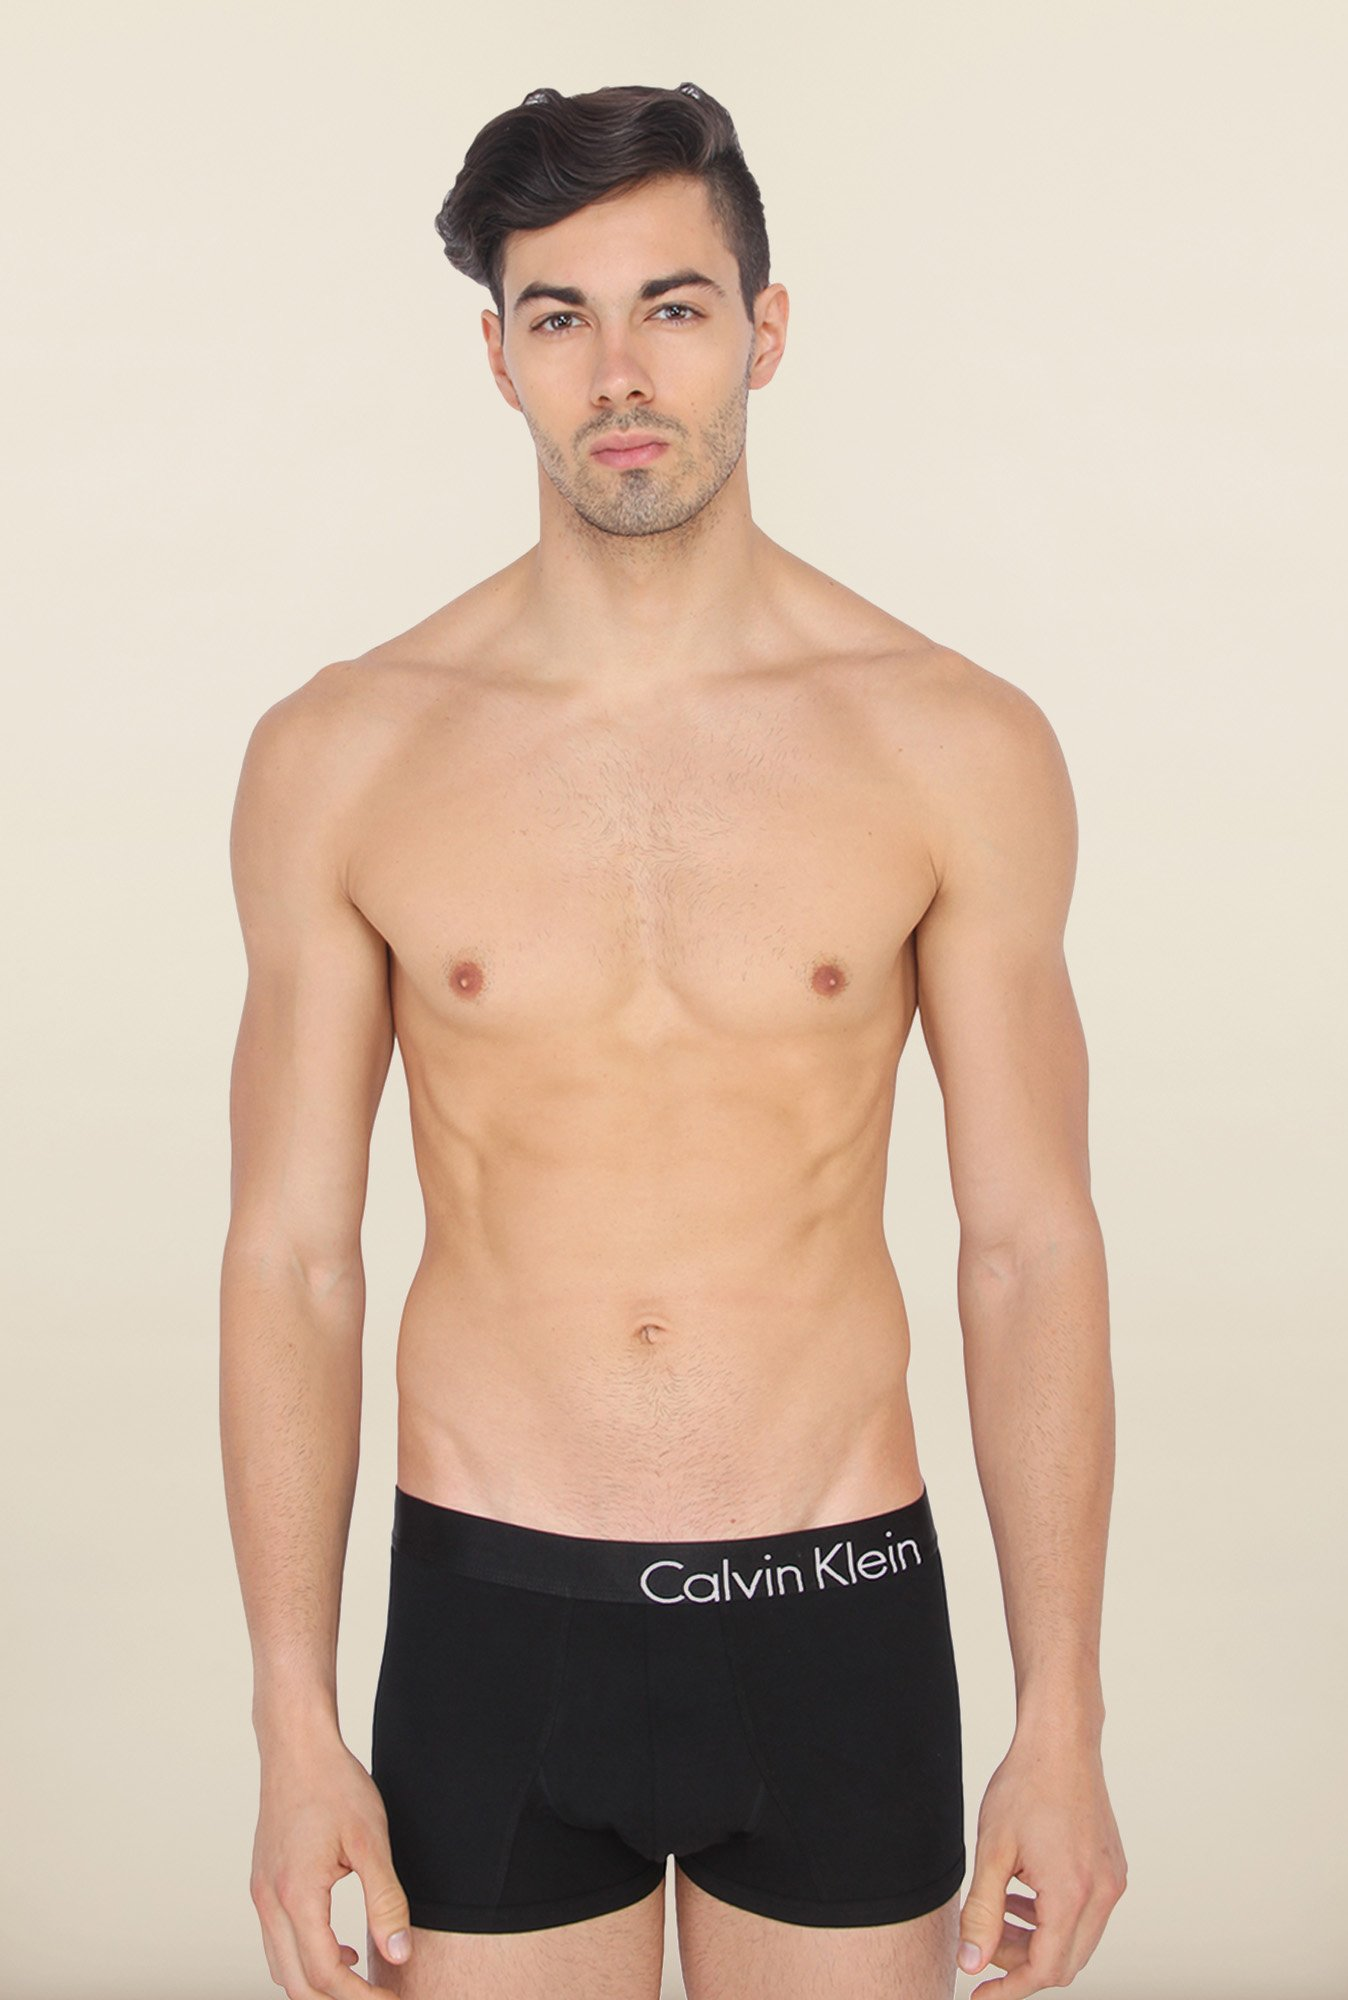 Calvin Klein Plain Black Trunks